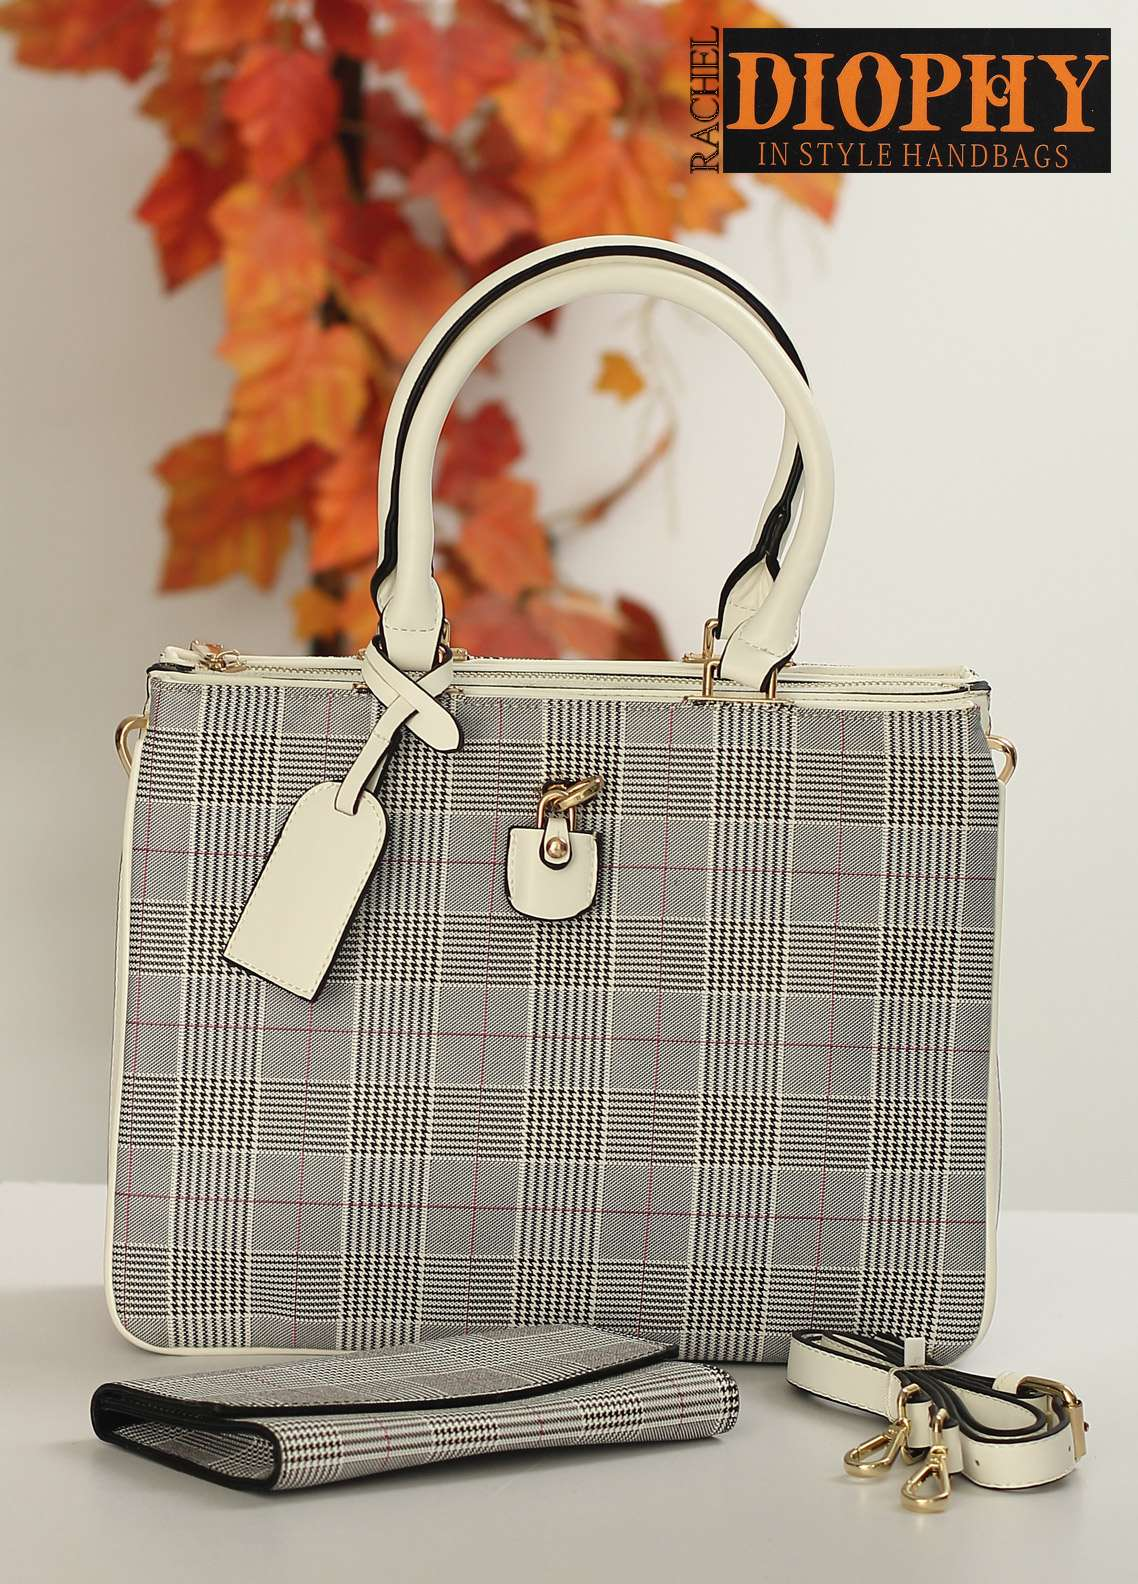 Rachel Diophy PU Leather Satchels Handbags for Women - White with Stripes Textured